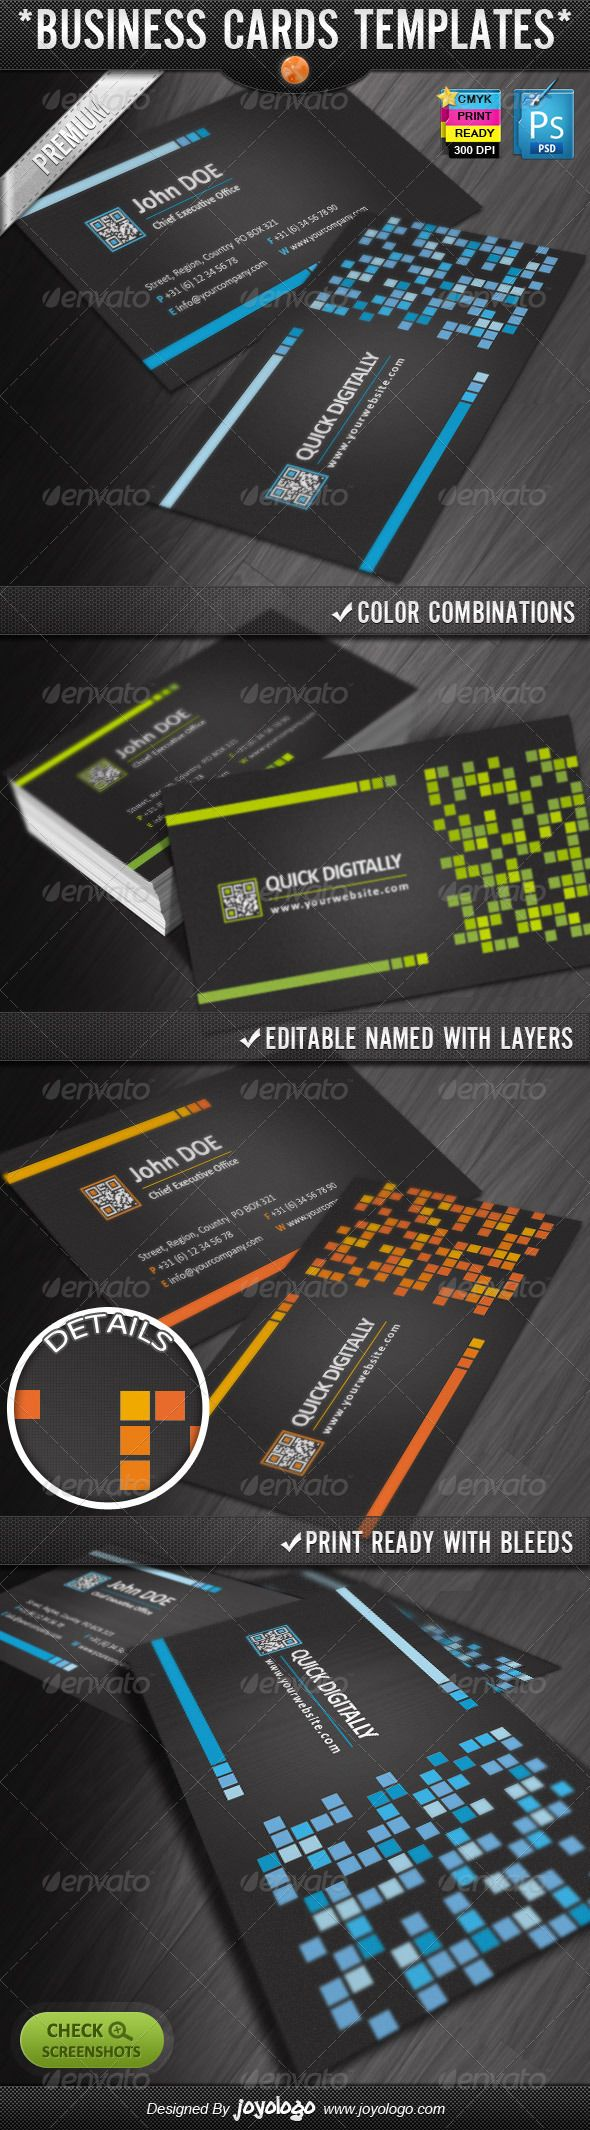 Digitally Quick Response Business Cards Designs Business Cards - Quick business card template